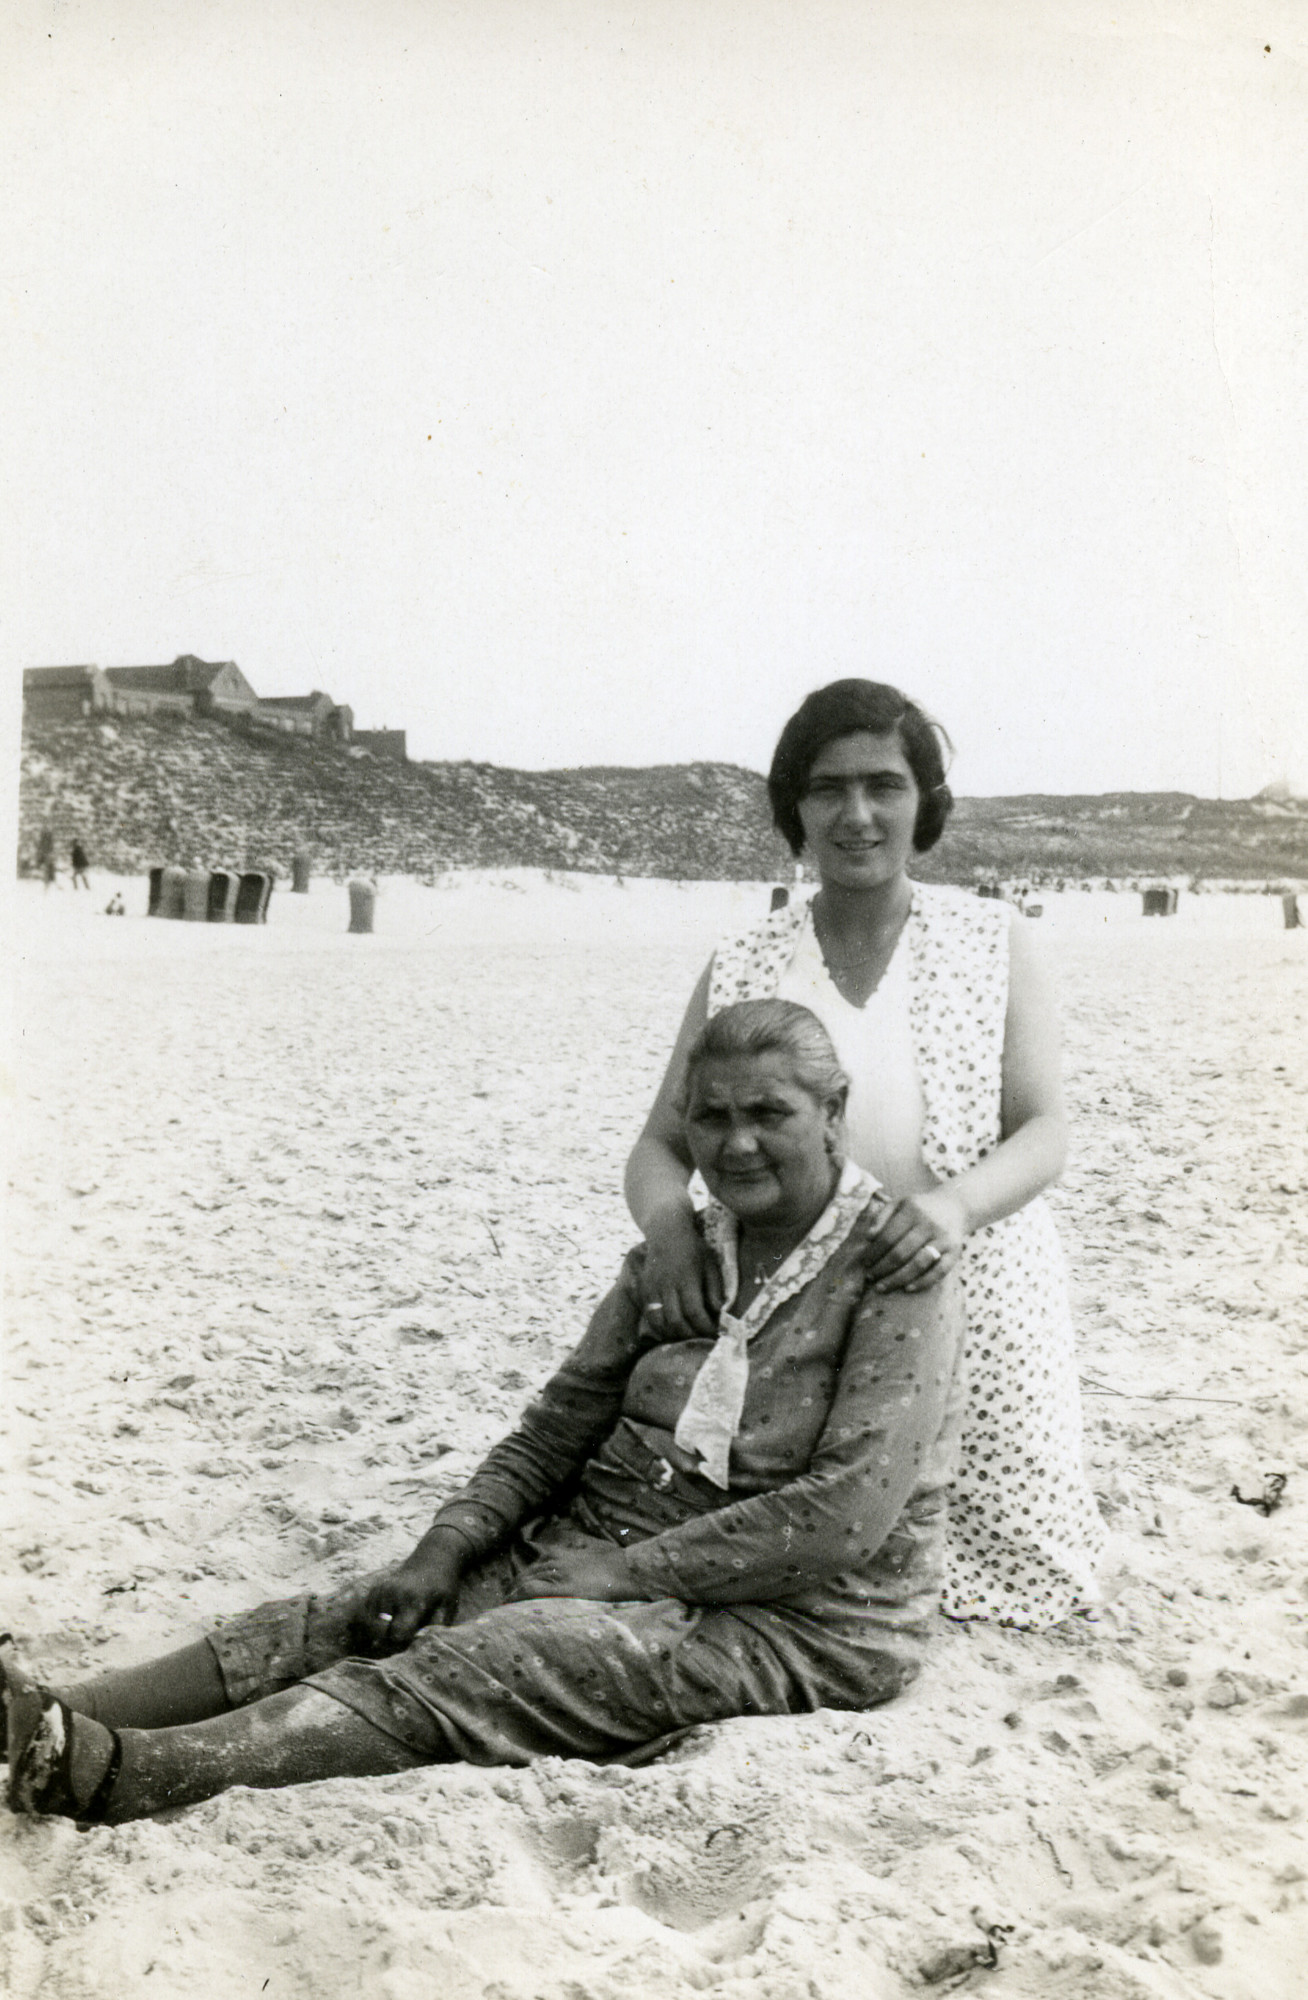 Trjntje de Jong and her daughter Schoontje (Shaina) relax on the beach.  Schoontje survived the Holocaust, but Trjntje perished.